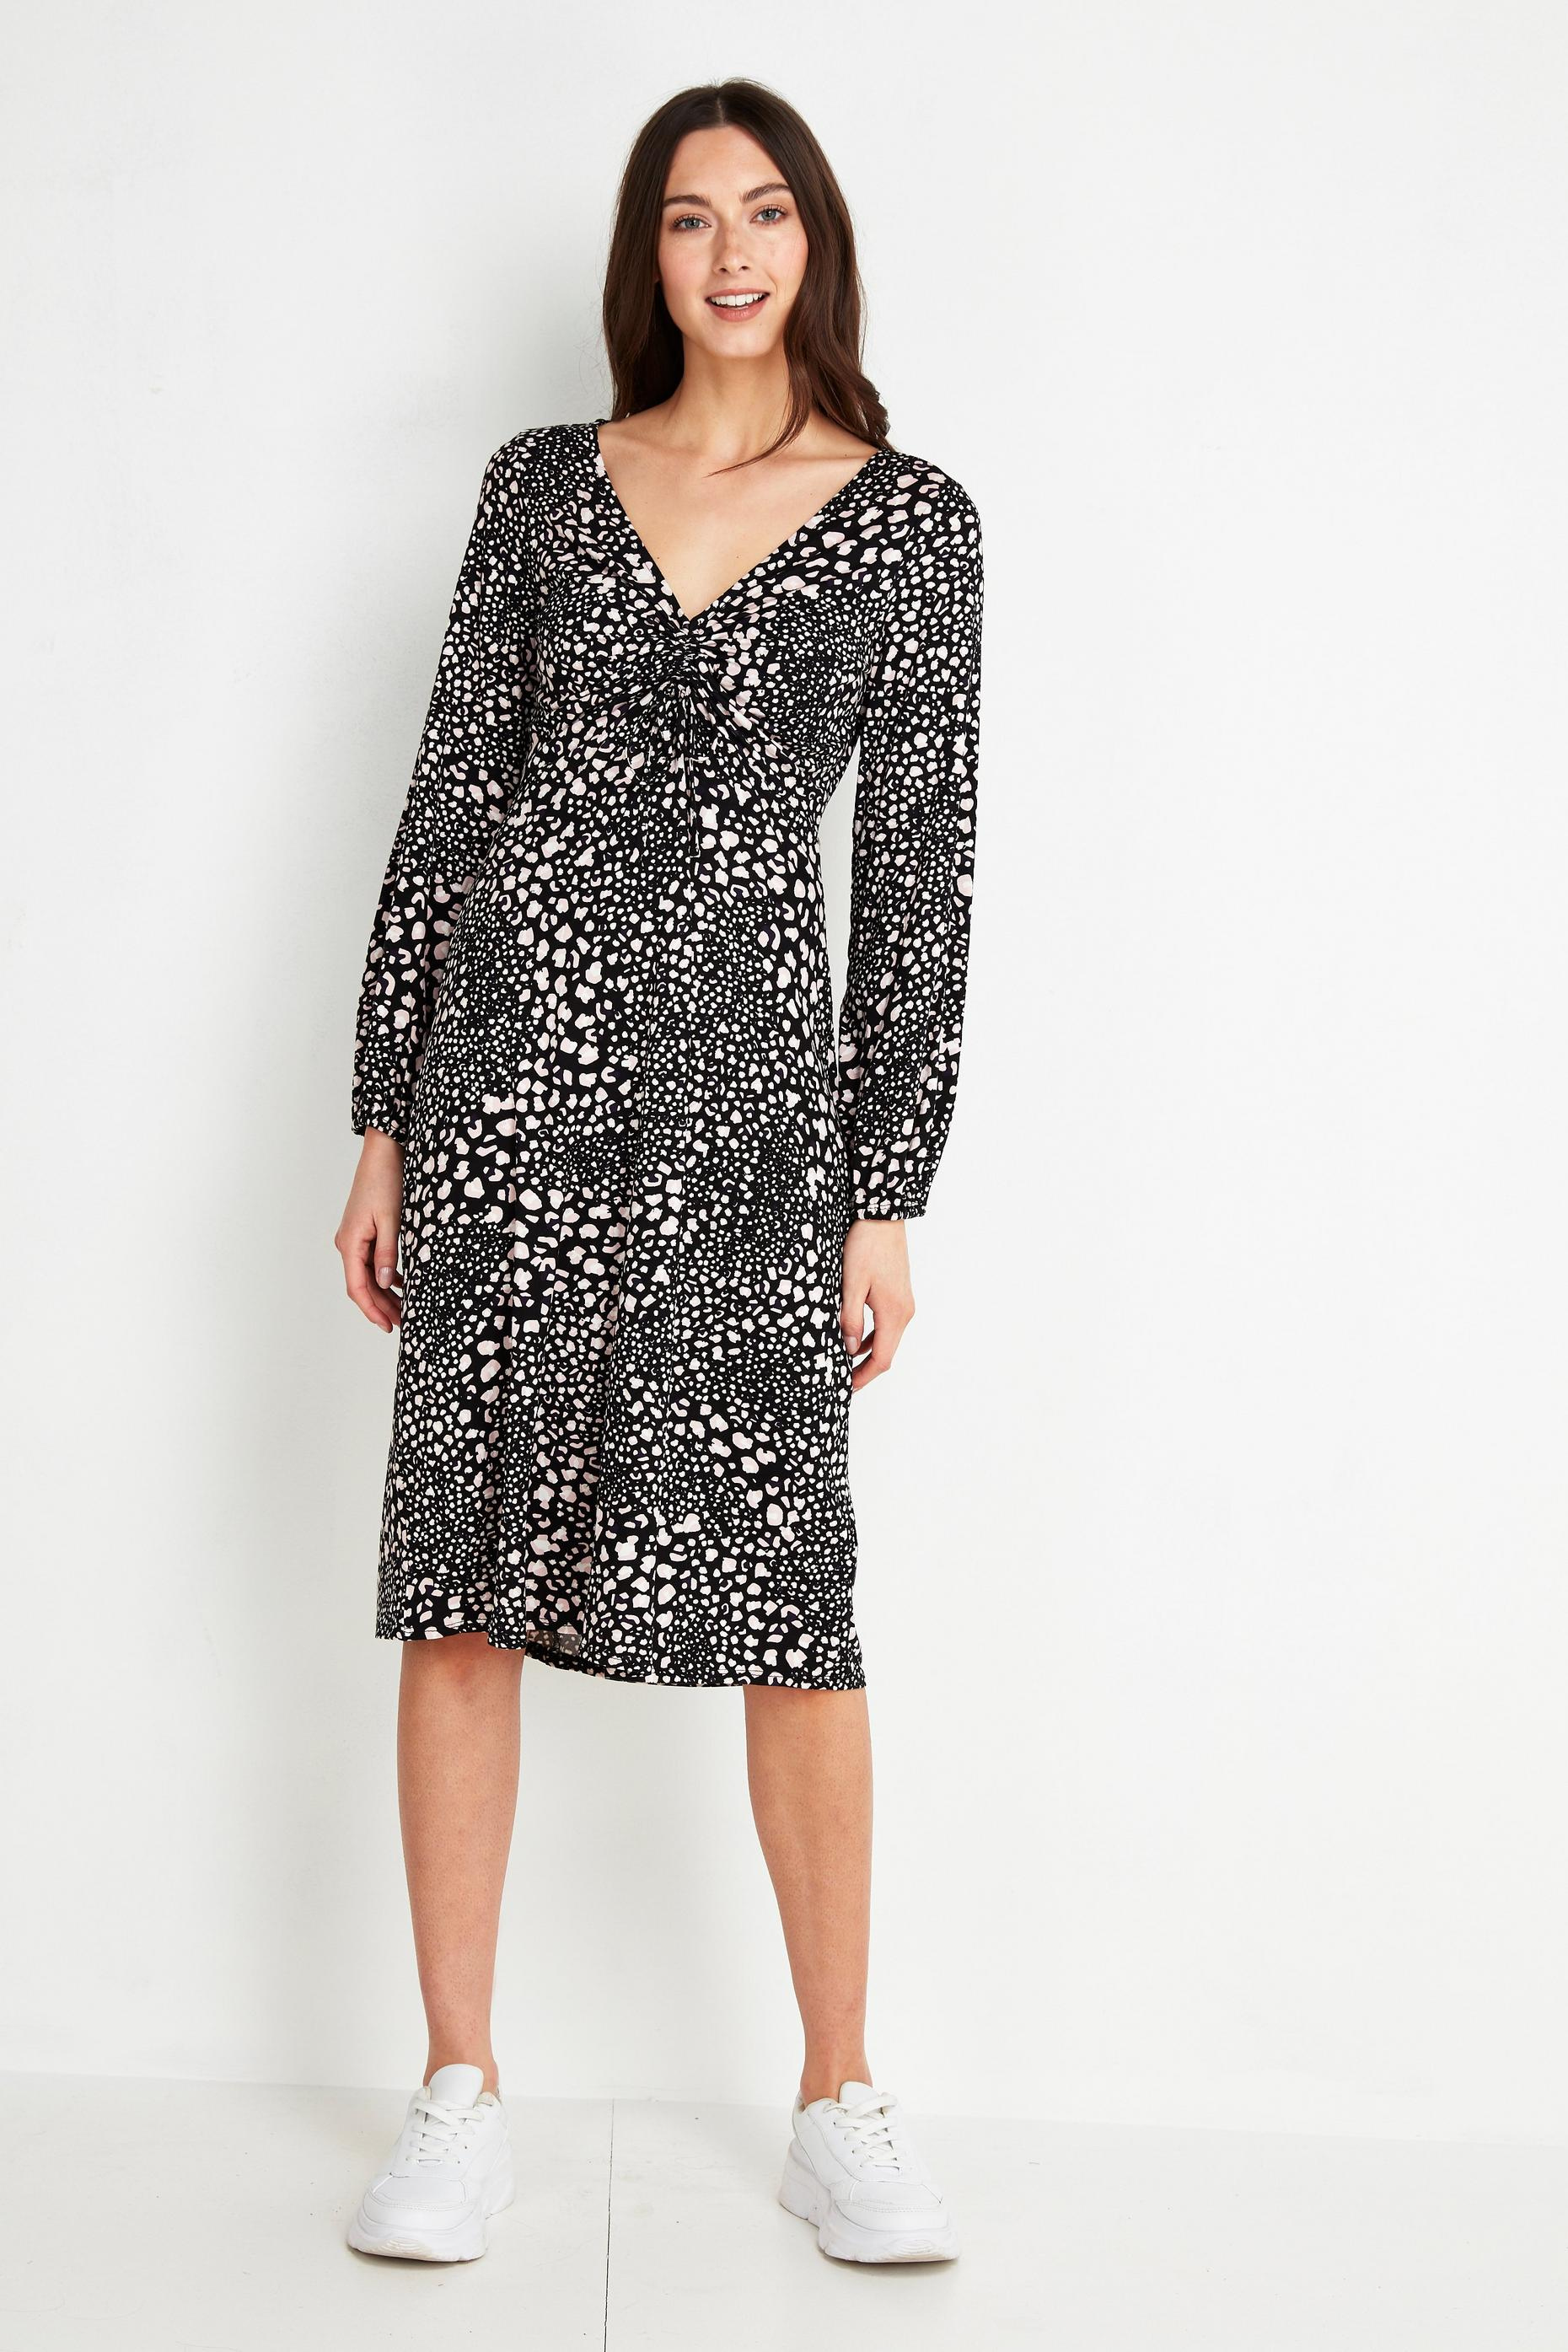 Monochrome Animal Print Ruched Midi Dress